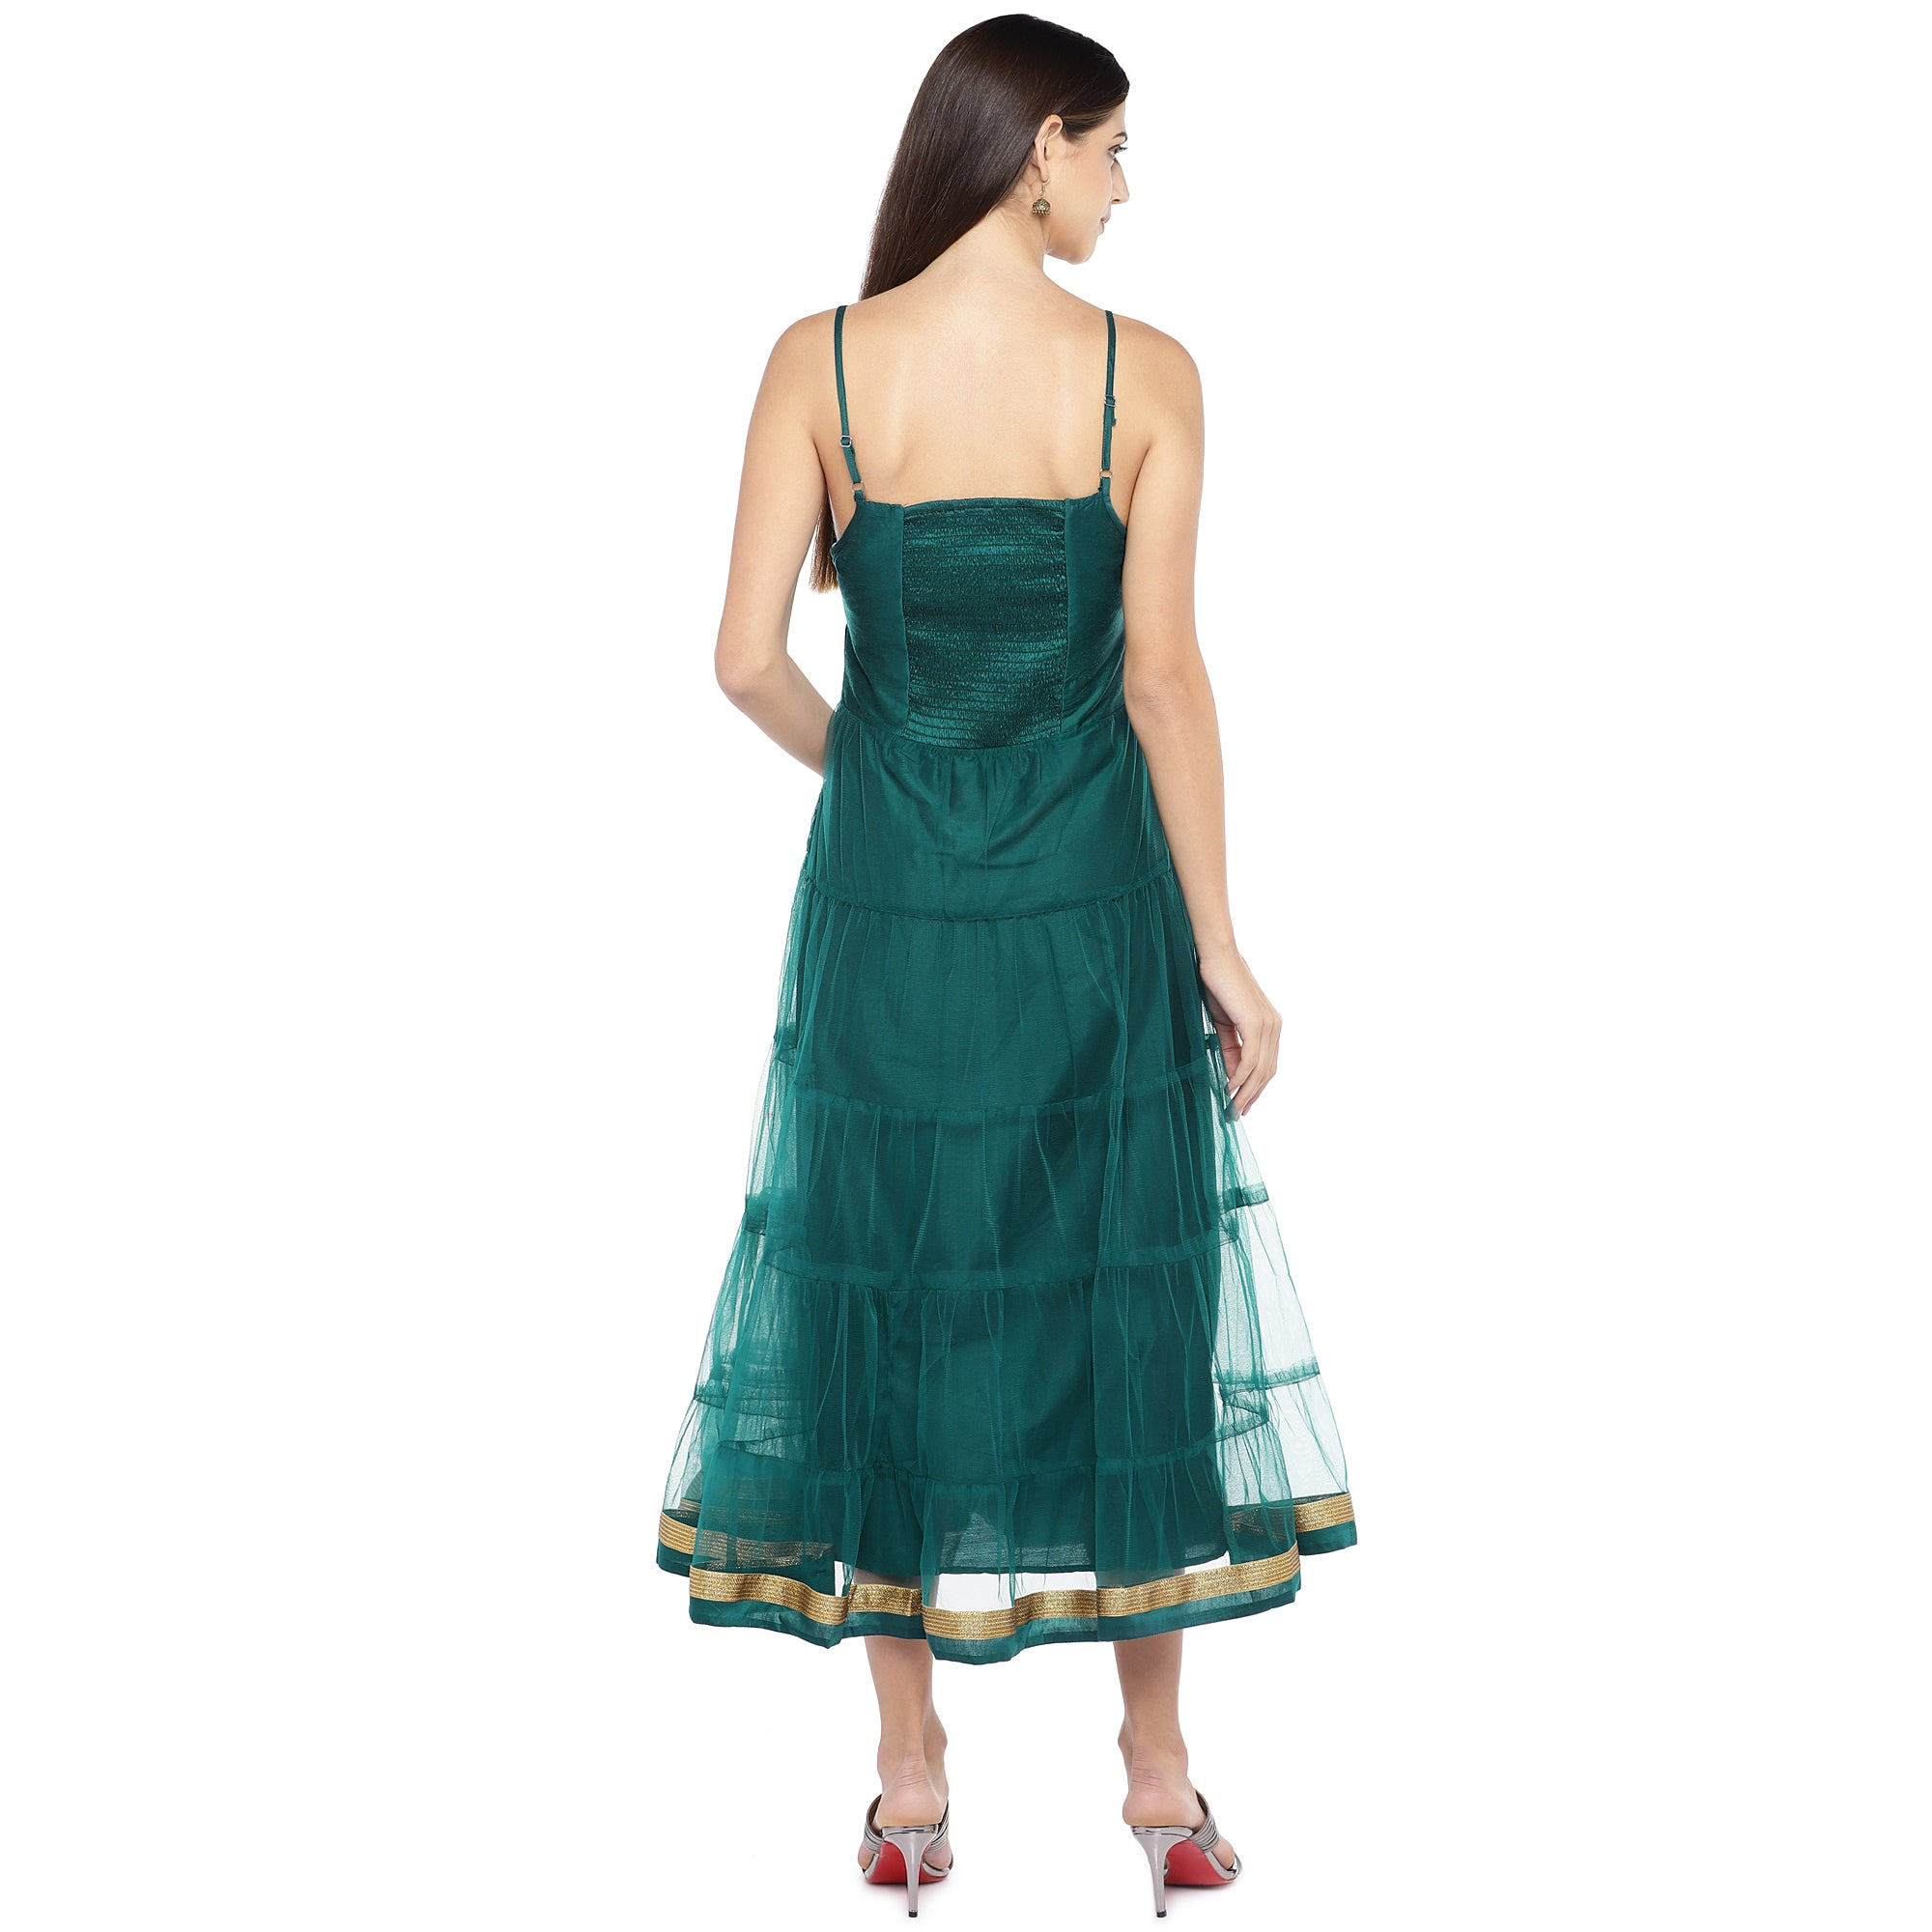 Teal Green Self Design Empire Dress-3